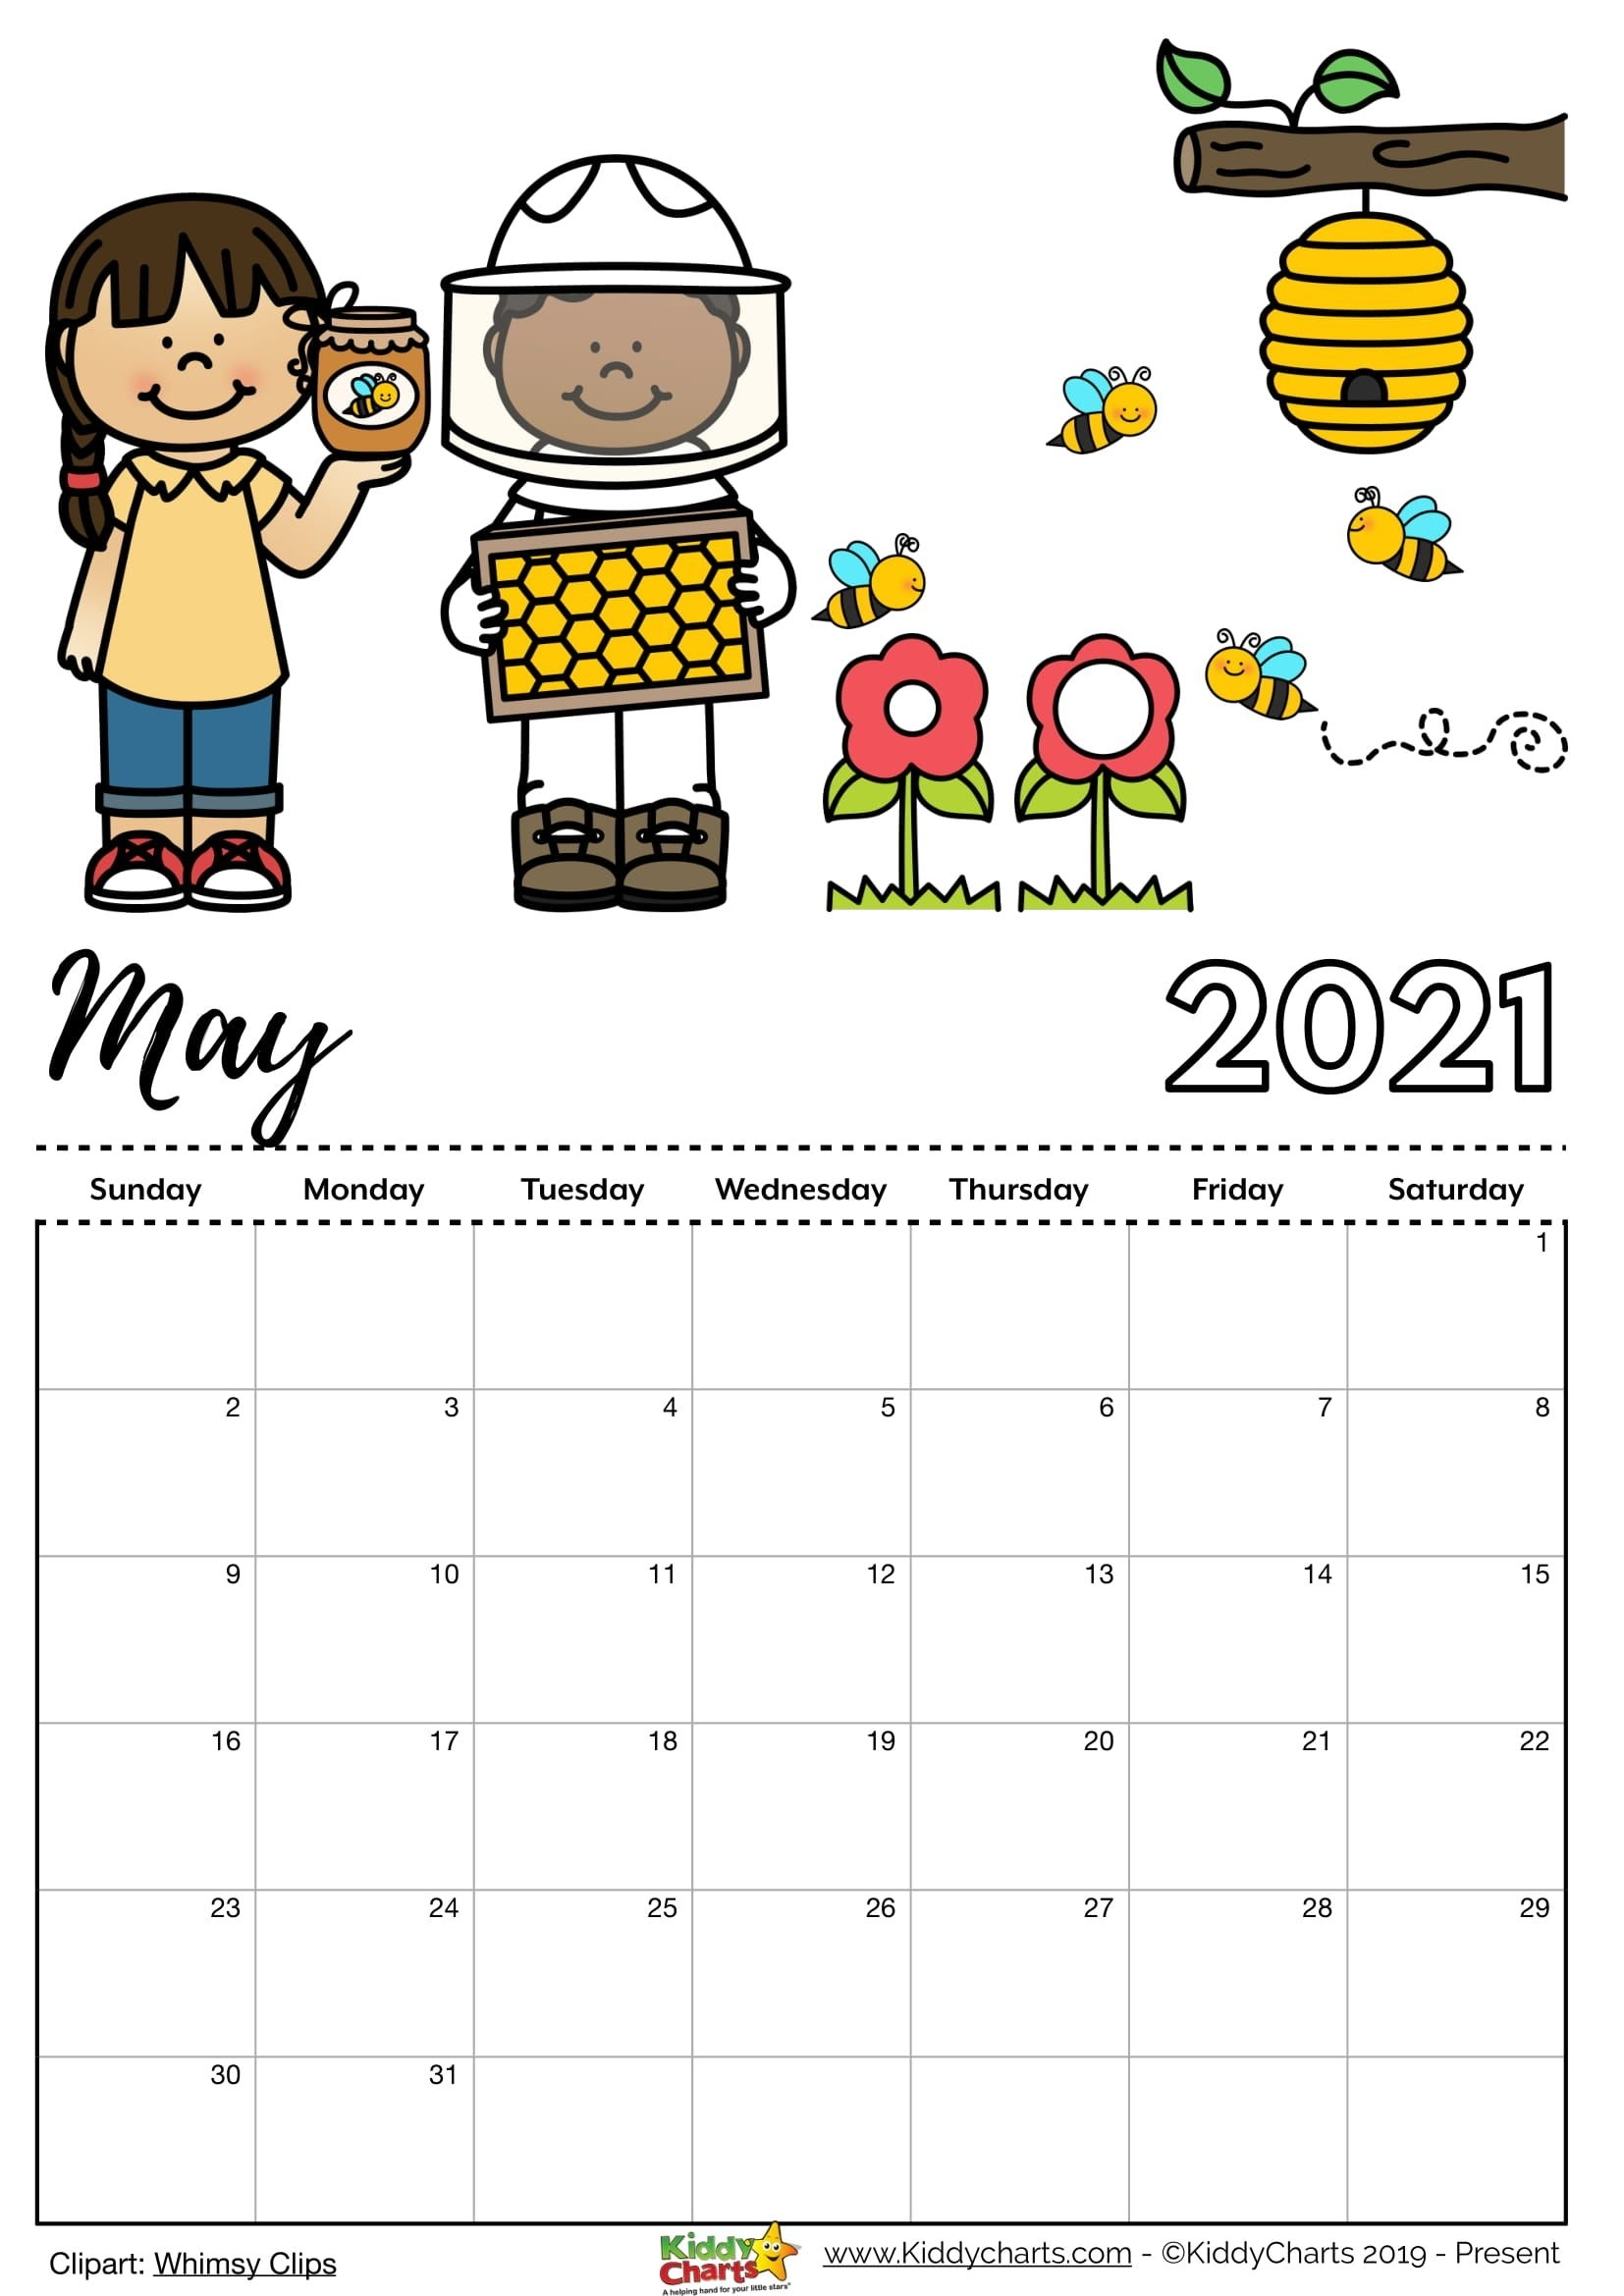 Check Our New Free Printable 2021 Calendar! | Monthly